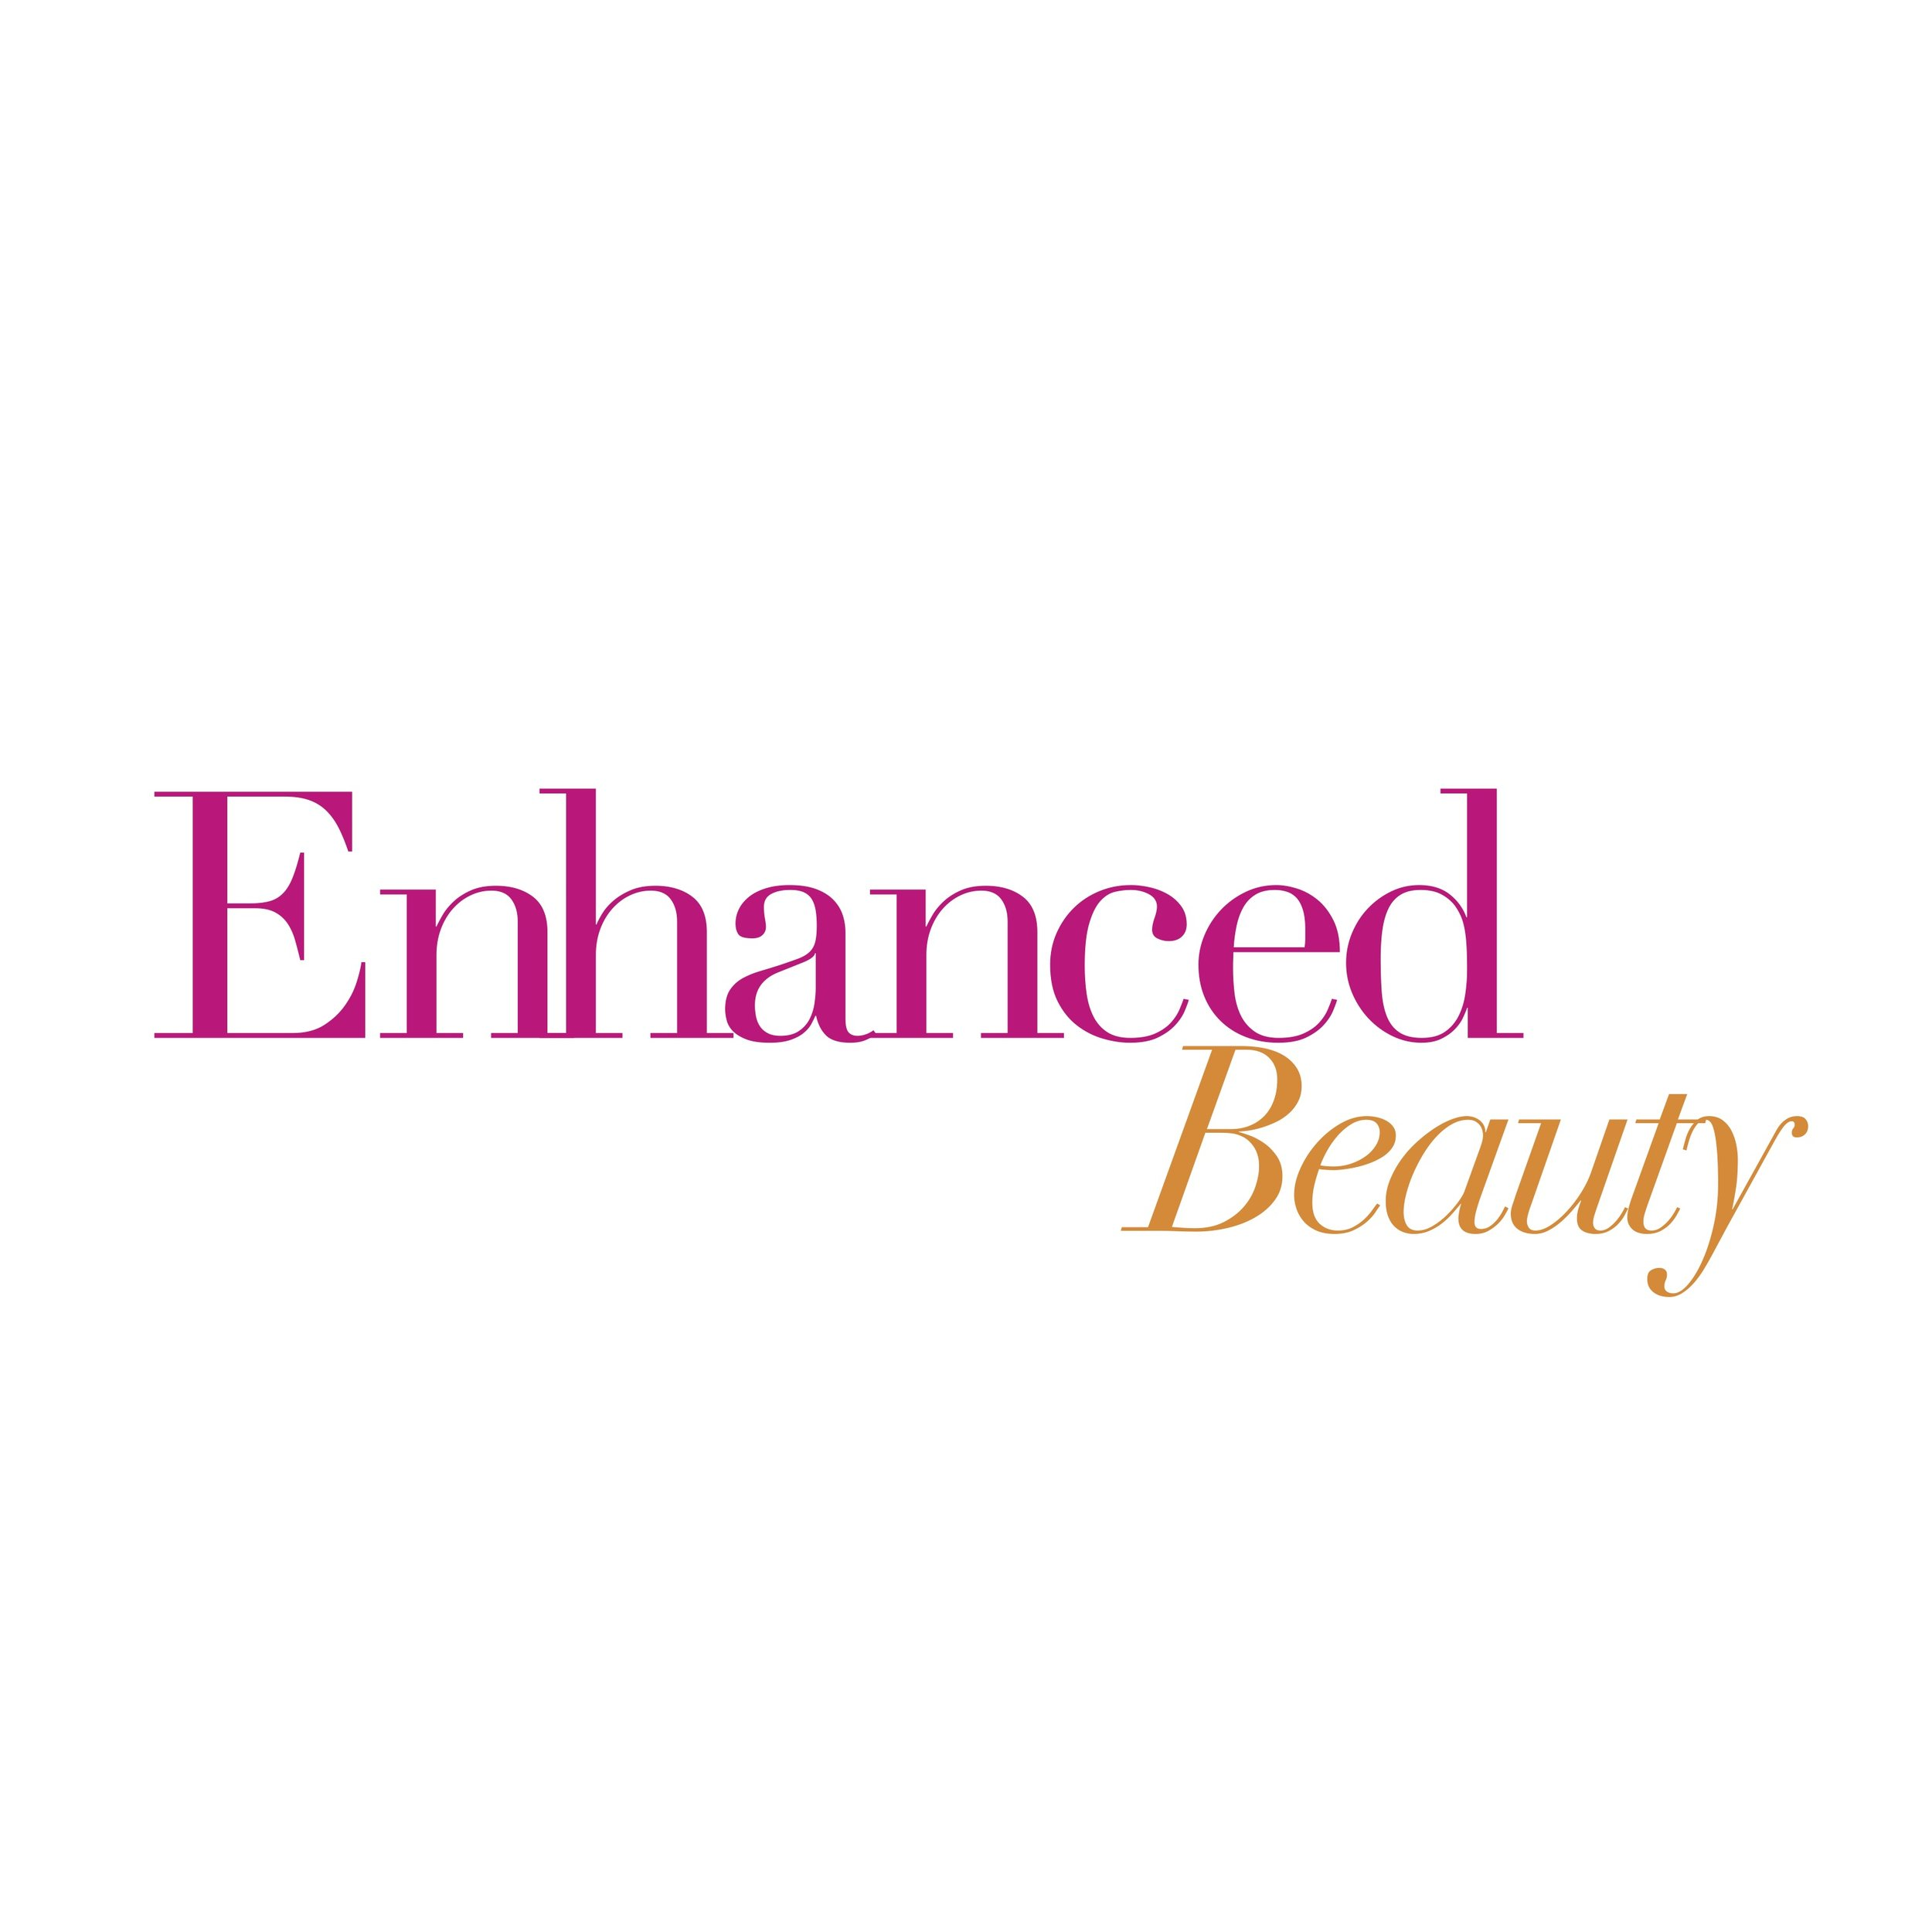 enhanced-beauty-final-logo.jpg